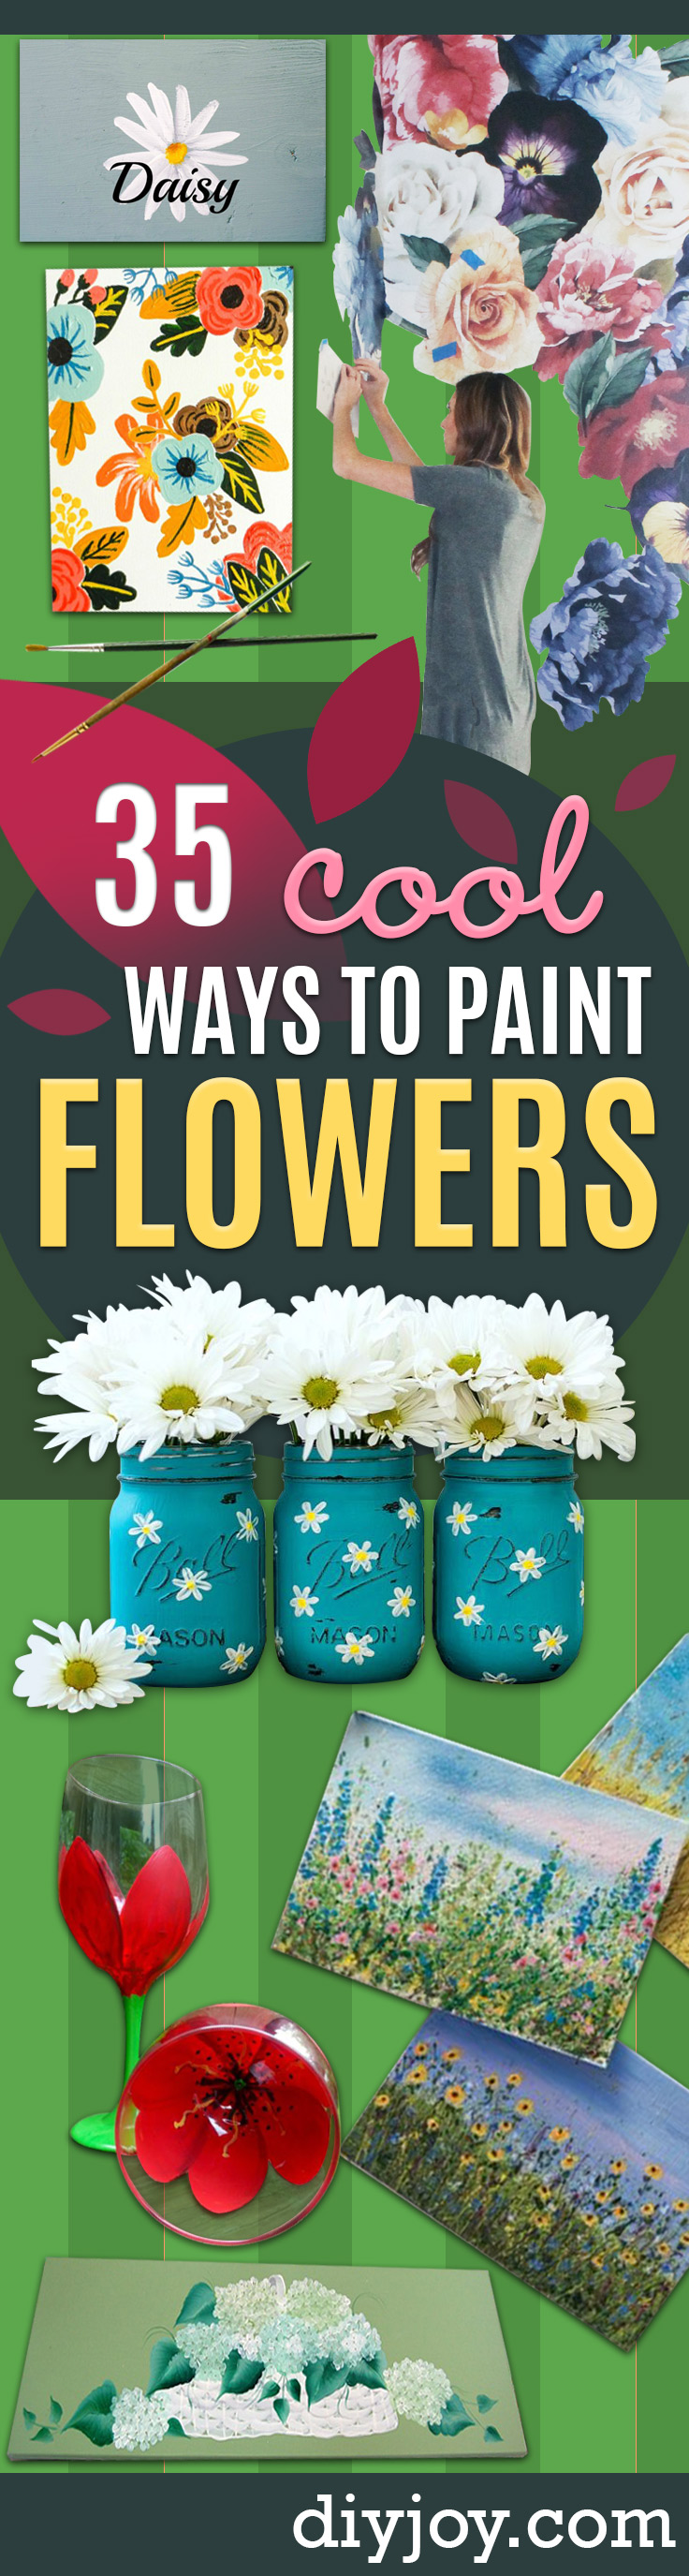 how to paint flowers - step by step flower painting tutorials for painting roses, Daisies, Whimsical and Abstract Floral Techniques - Easy Acrylic Flower Tutorial for Beginners - Paint on Wood, Canvas, On Wasll, Rocks, Fabric and Paper - Instructions and How To #painting